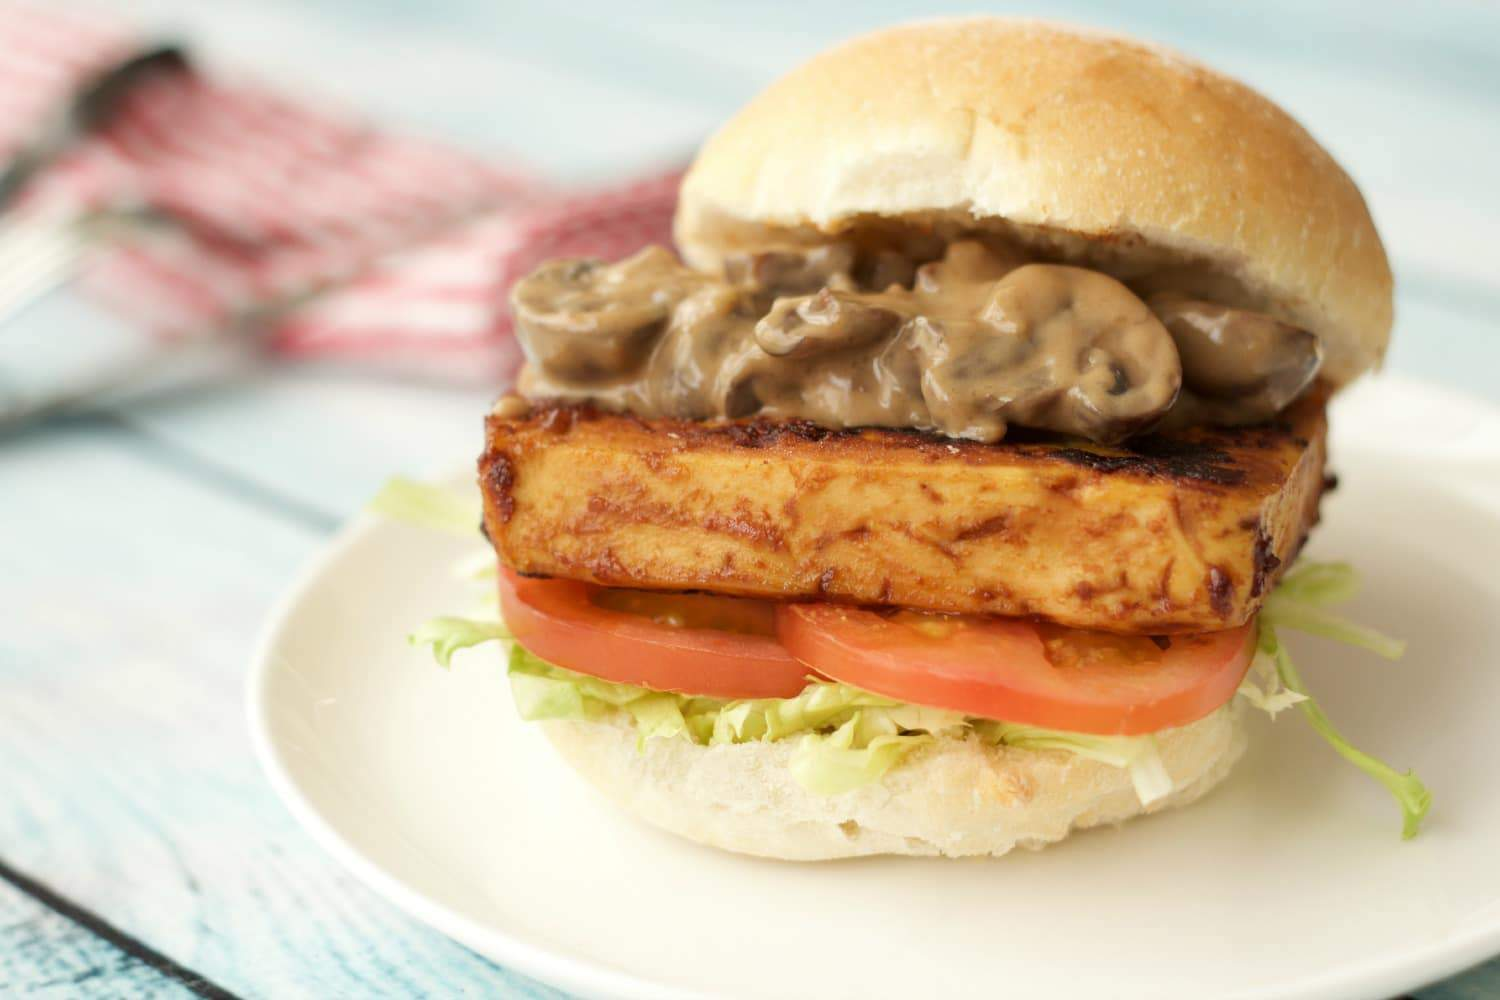 Vegan Tofu Burger - Baked and marinaded tofu served on a hamburger bun ...